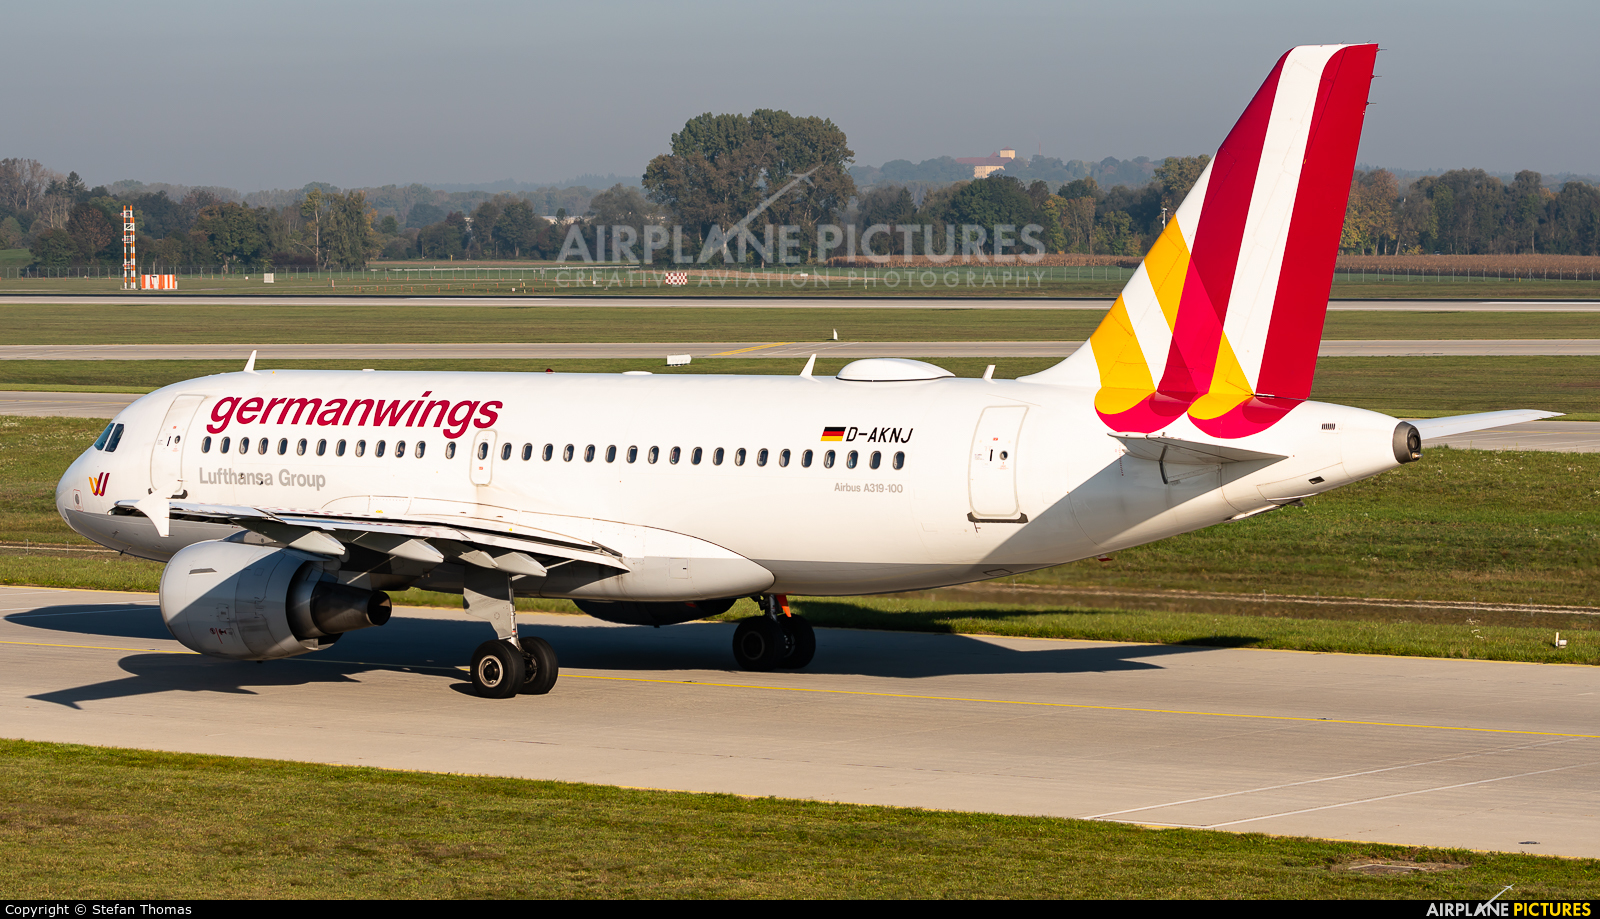 Germanwings D-AKNJ aircraft at Munich